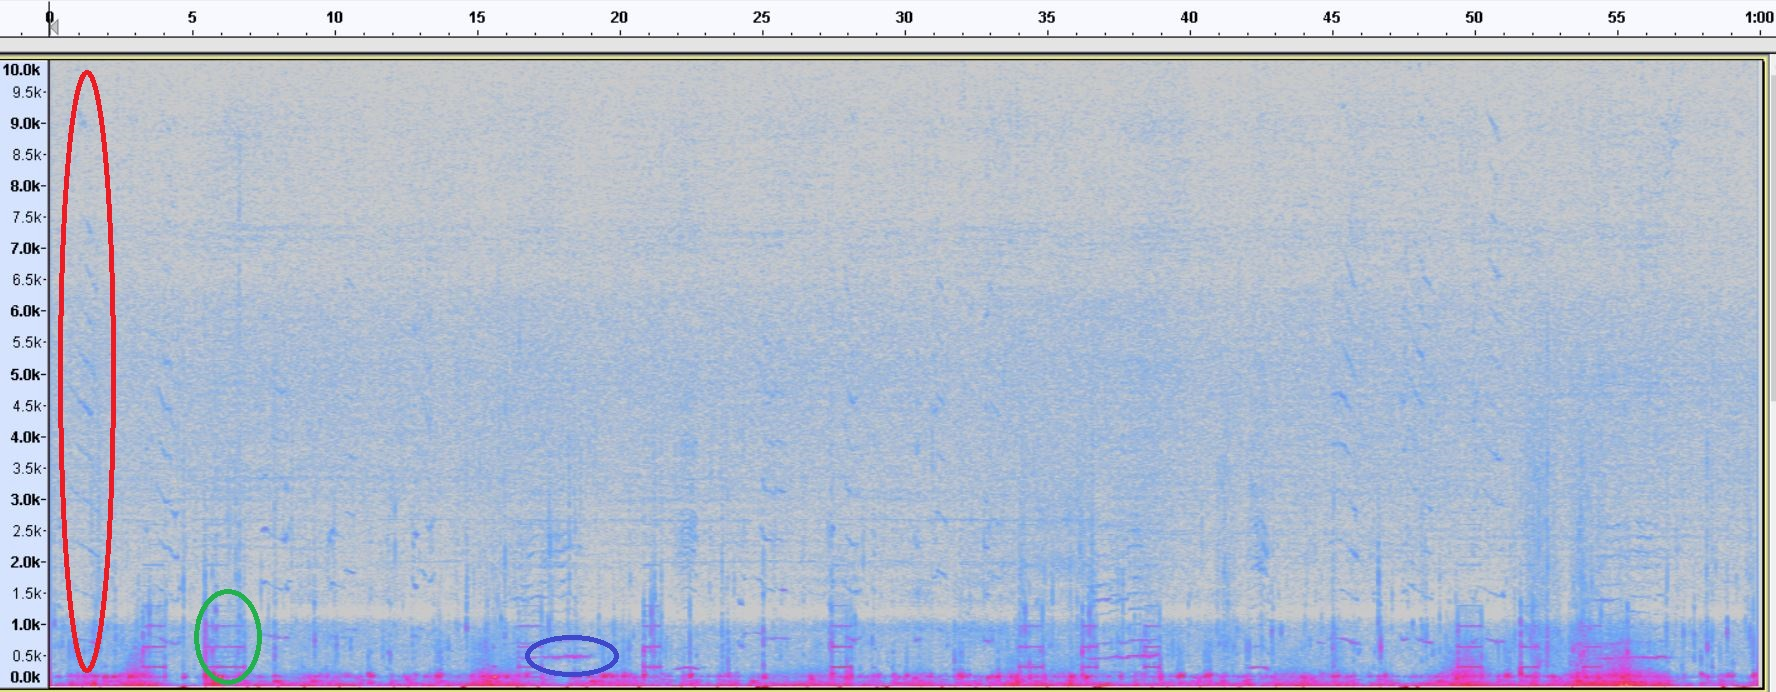 Spectrogram of humpback whale WAV file (0-10kHz): a graphical representation of an mp3 audio. The X-axis is time (seconds) and the Y-axis is frequency (Hertz).